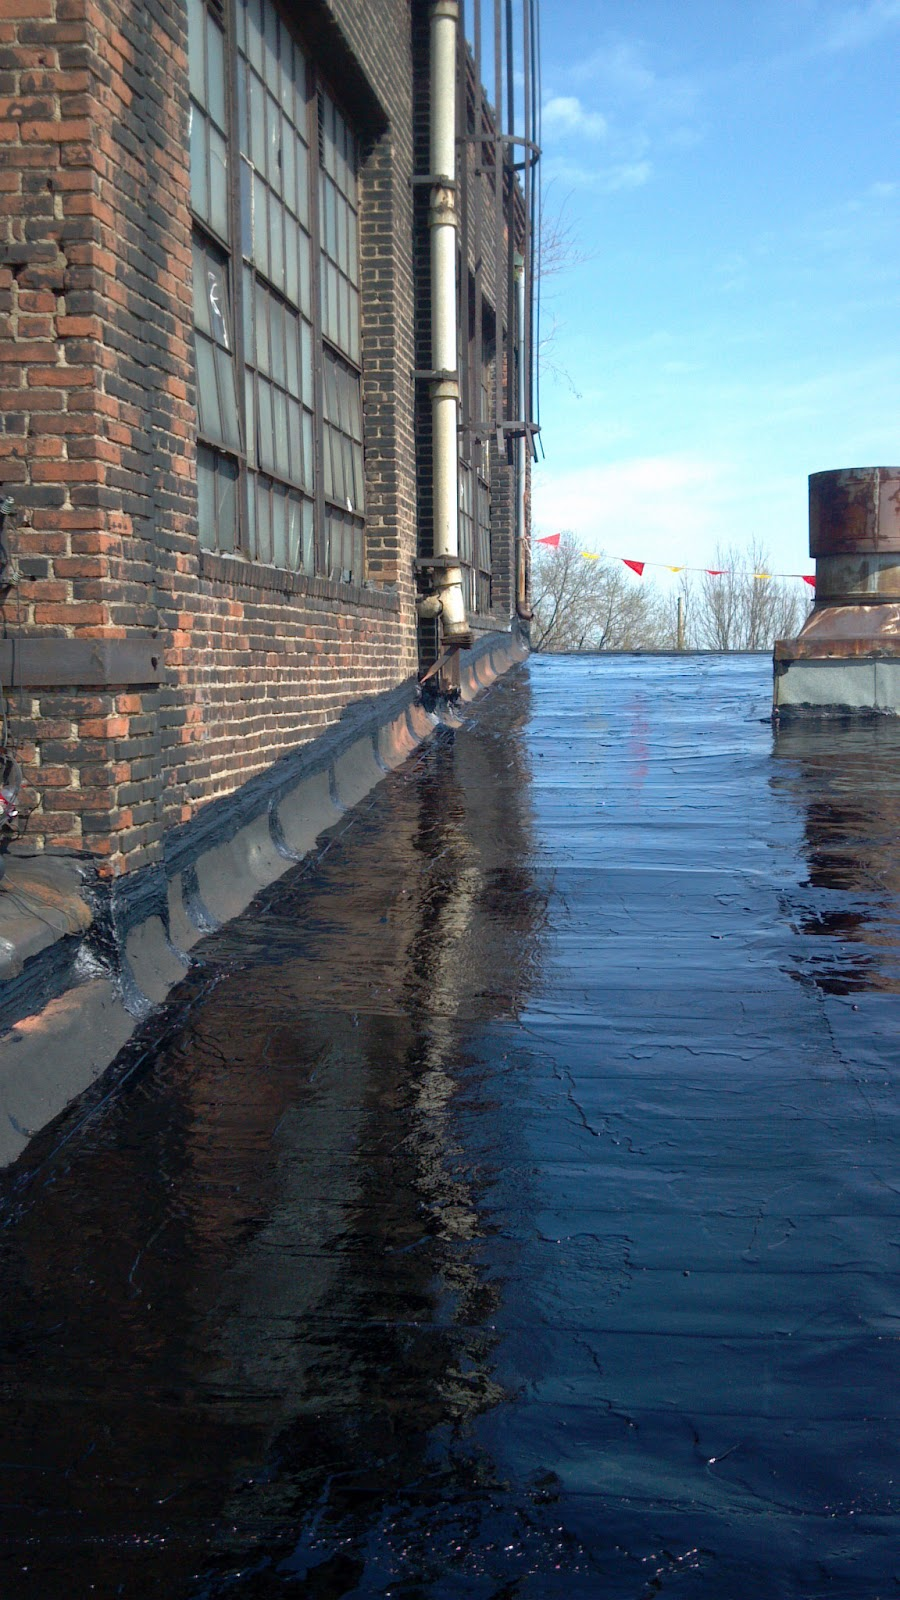 Marvelous Atlas Roofing Company Partial Roof Renovation   Cleveland, Ohio